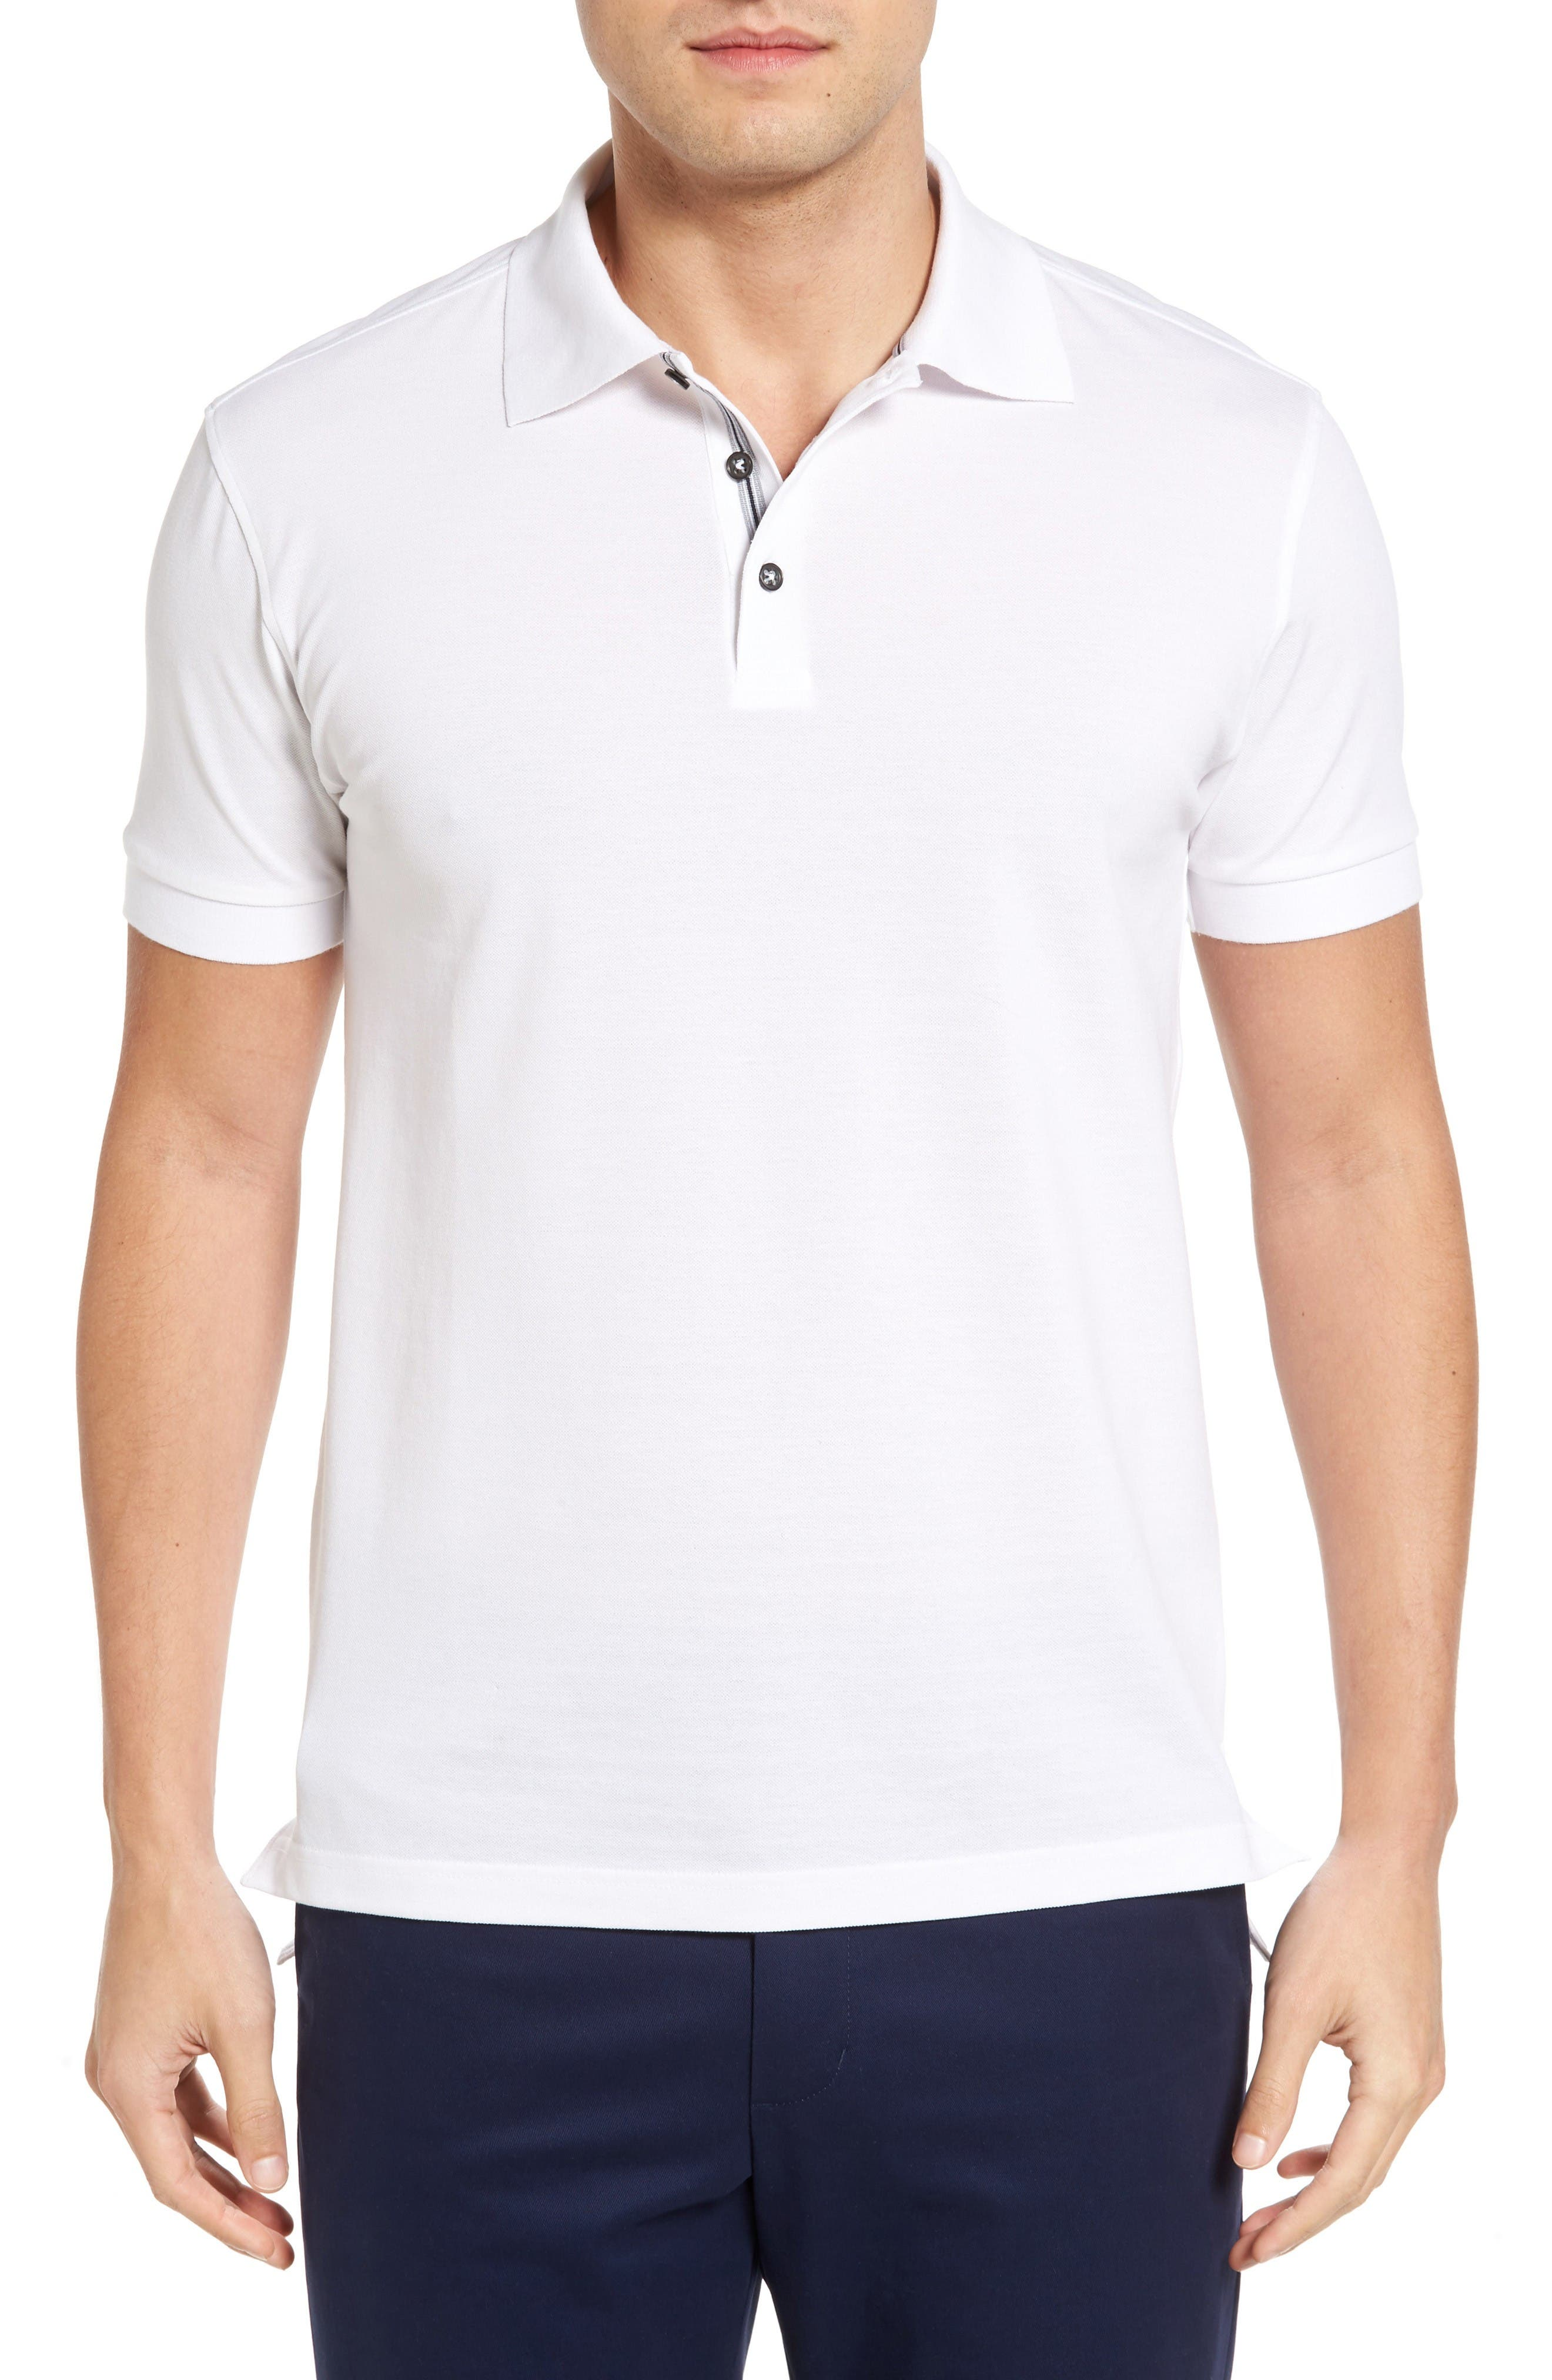 BOBBY JONES Solid Piqué Golf Polo